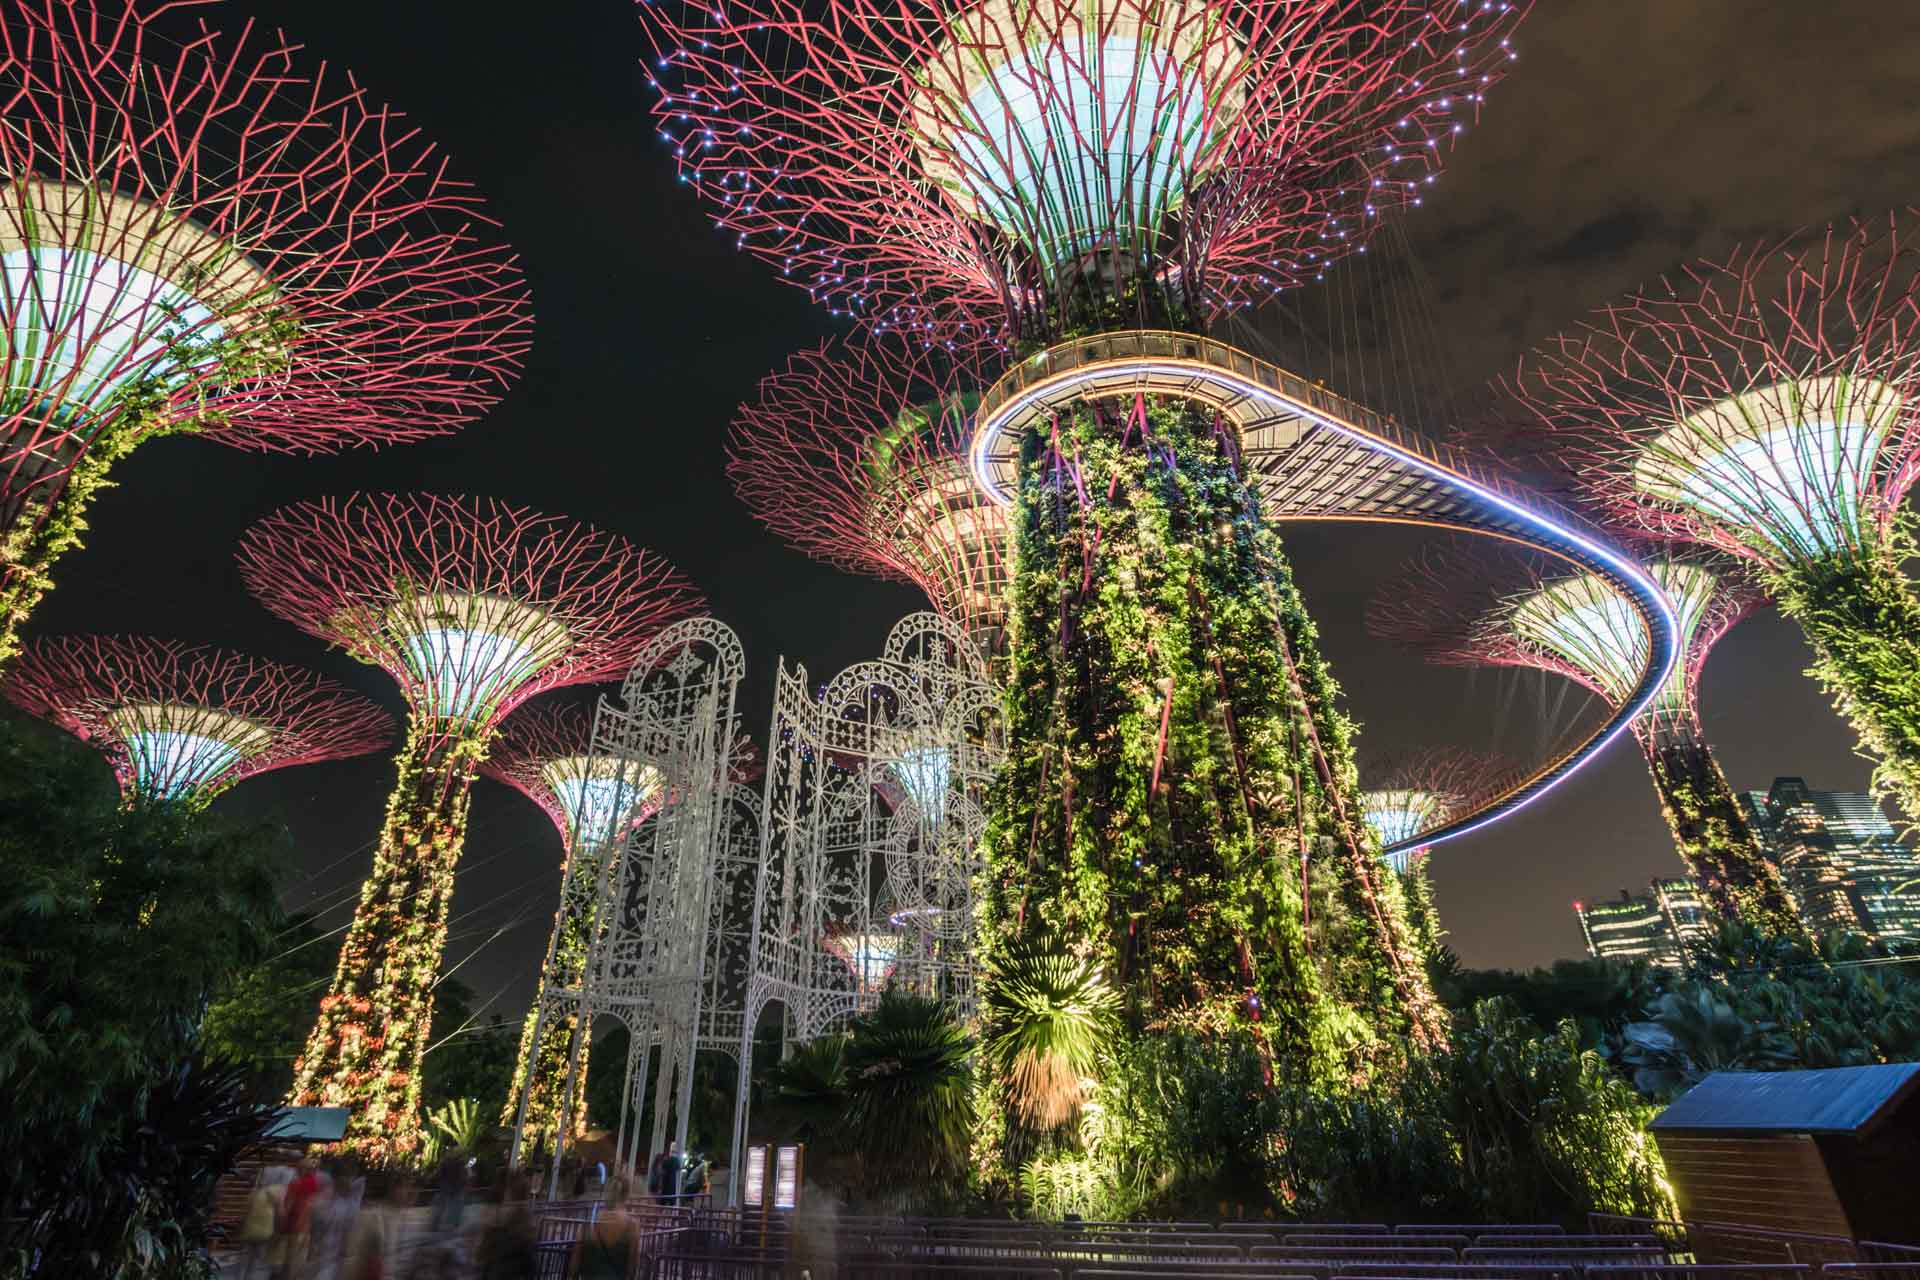 Gardens by the Bay: Luminous Supertrees From the Future